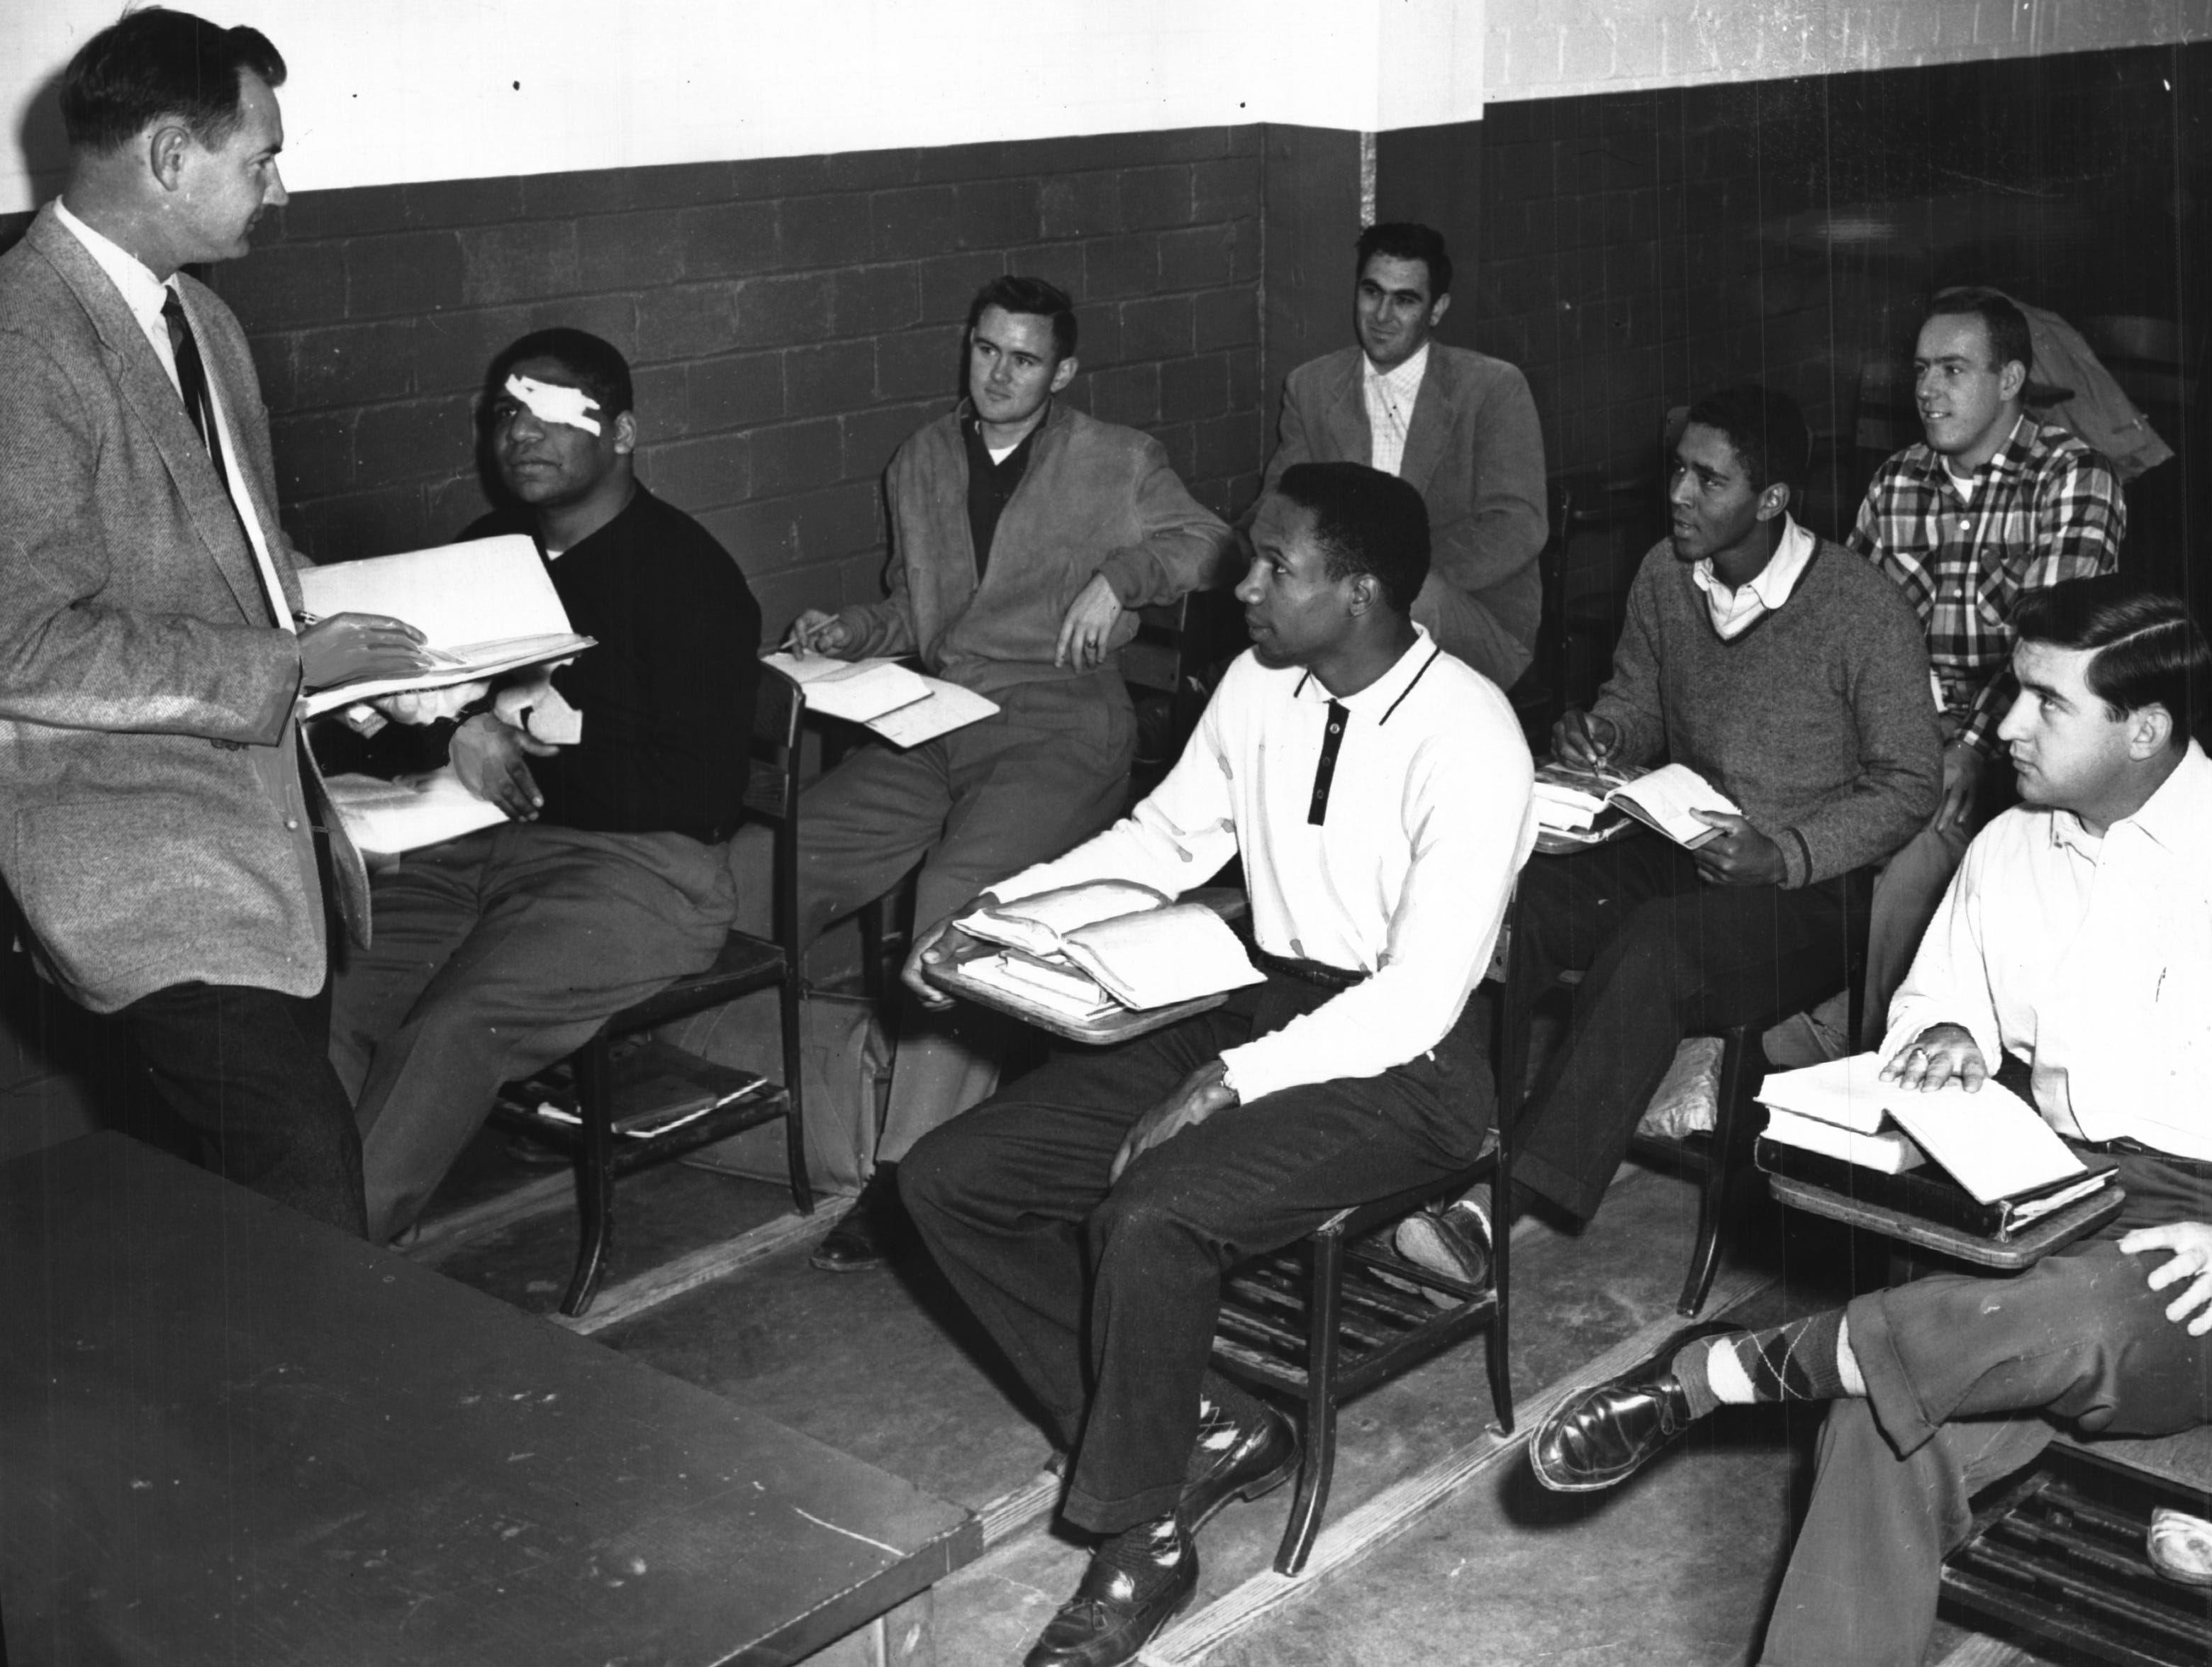 Frank Robinson, seated, center foreground, is shown taking classes at Xavier University while playing his rookie season with the Cincinnati Reds in 1956.